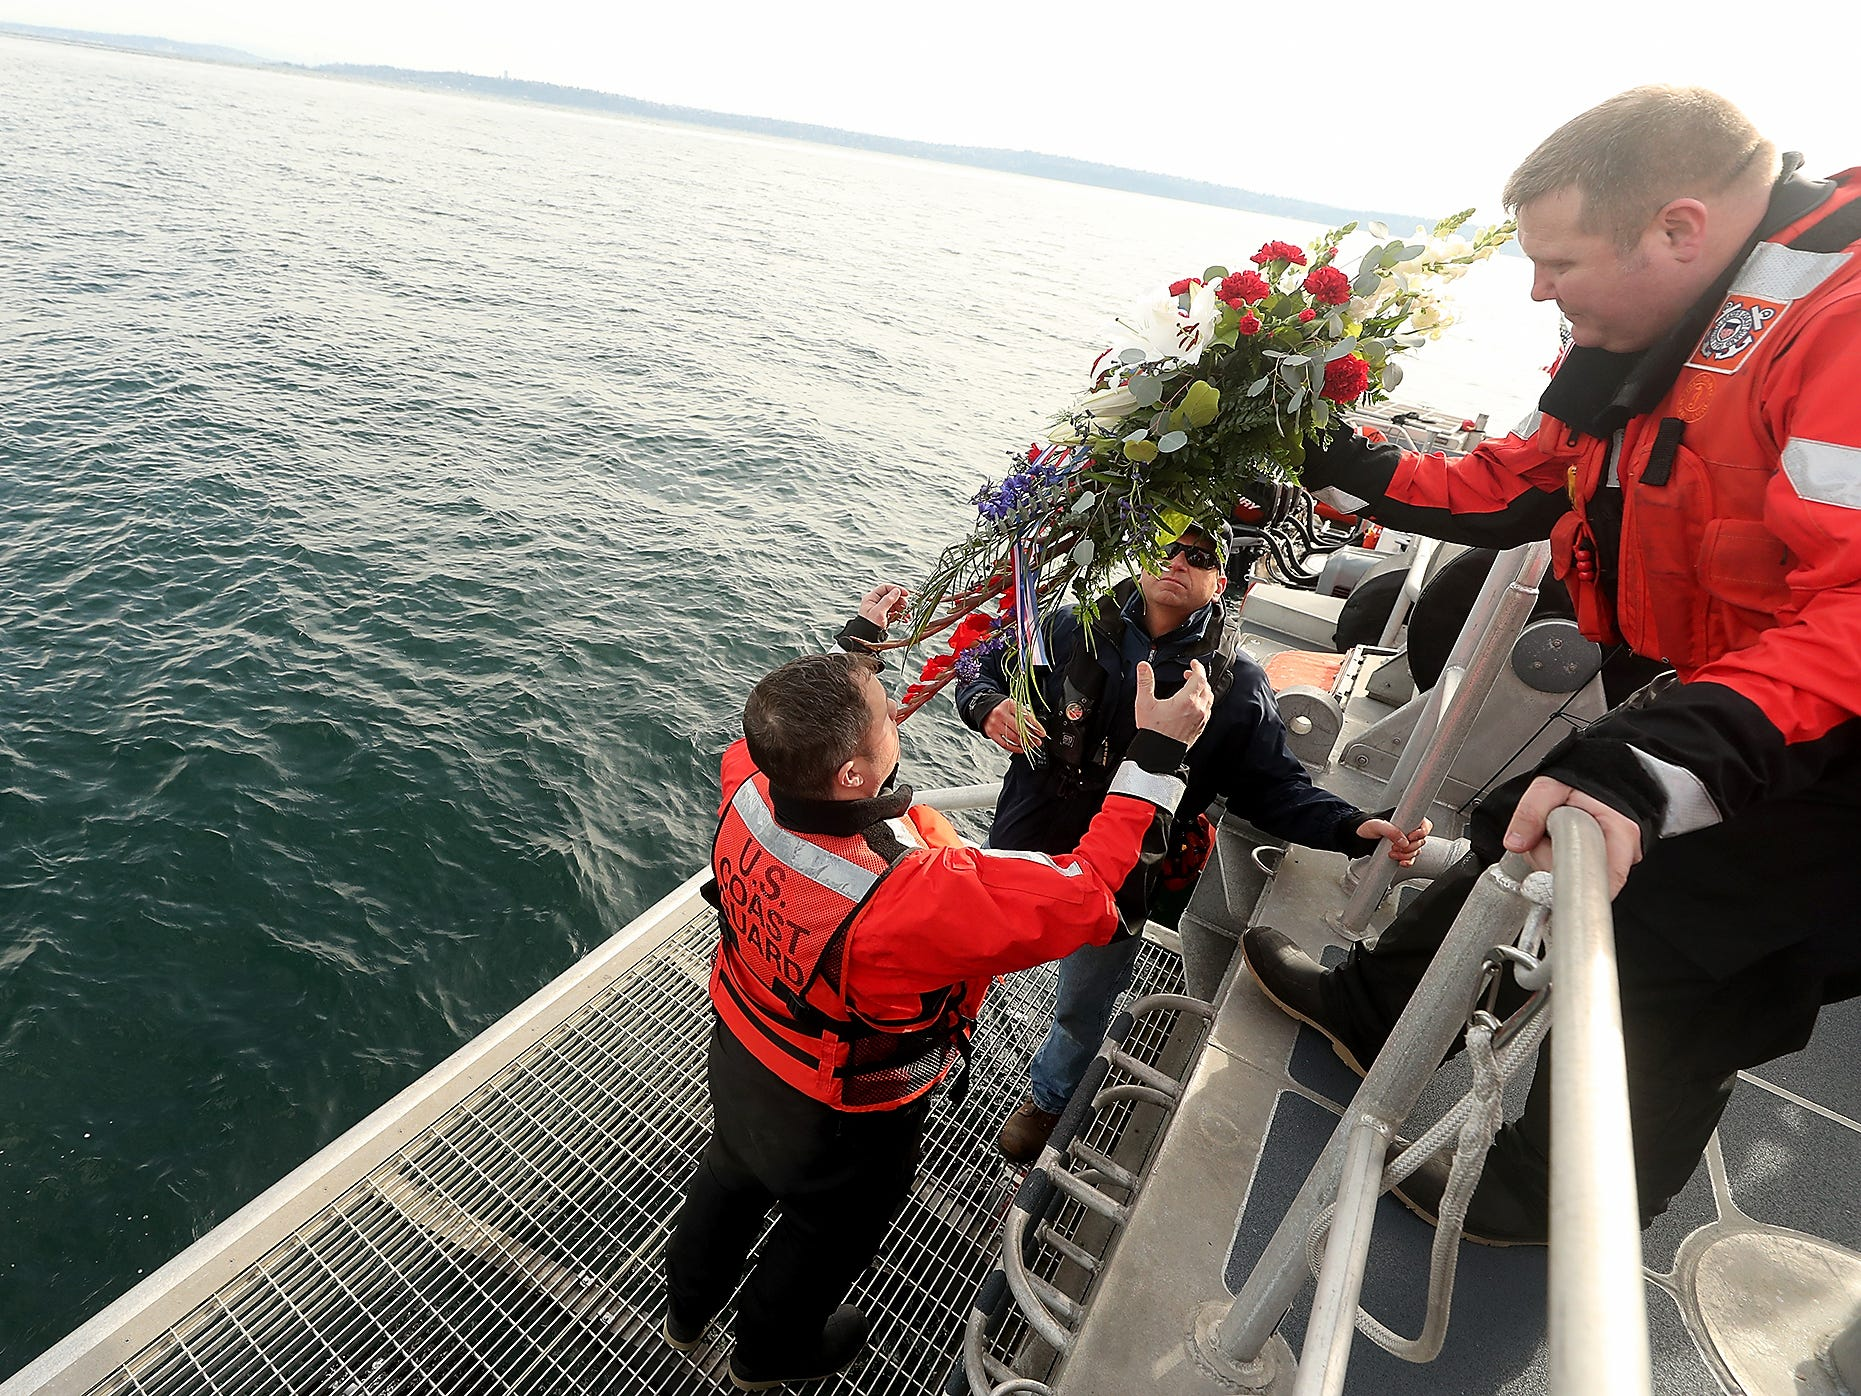 USCG Chief Boatswain Mate Aaron Balazs (right) hands the wreathe down to Chief Boatswain Mate Brandon Alani (left) and Chris Mogavero as they prepare to place the wreath in the water in memory of Petty Officer Ronald Gill on Monday, March 25, 2019. Gill was killed in 2007 when he was ejected from his patrol boat while conducting maritime homeland security operations in Puget Sound.